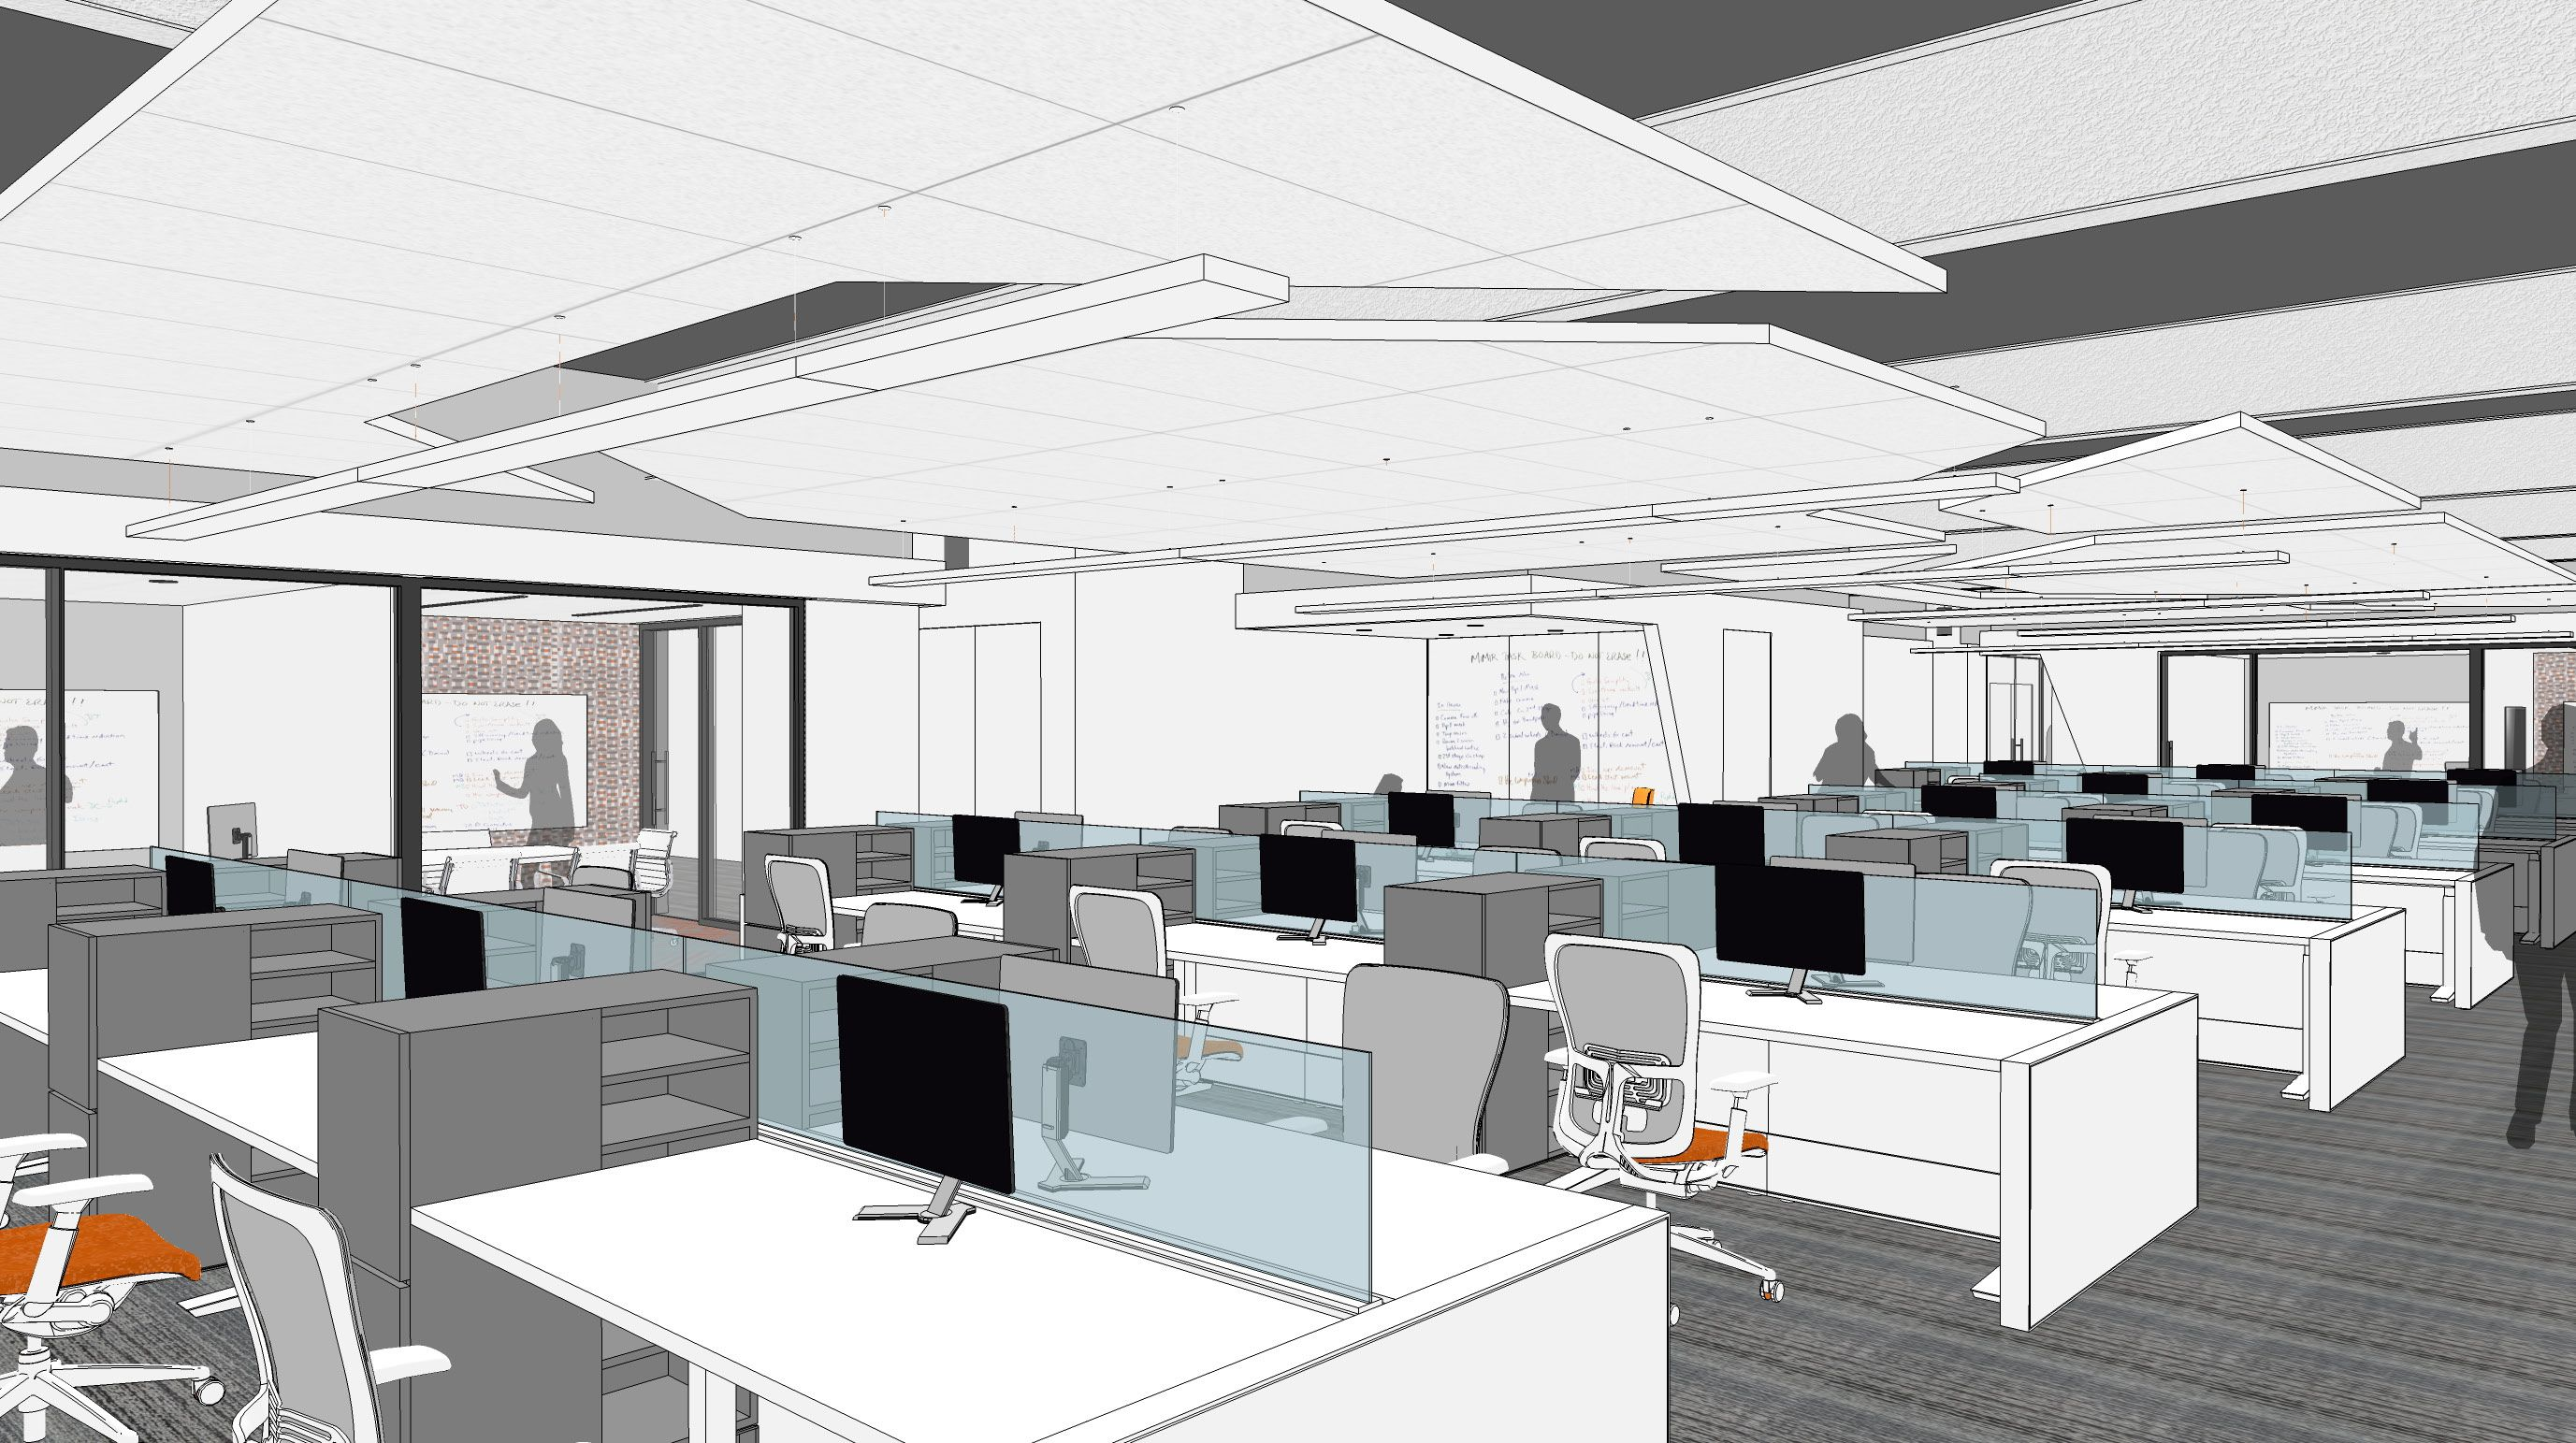 Open Office Exposed Ceiling Carpet Tile 3Form Pendant - Conference